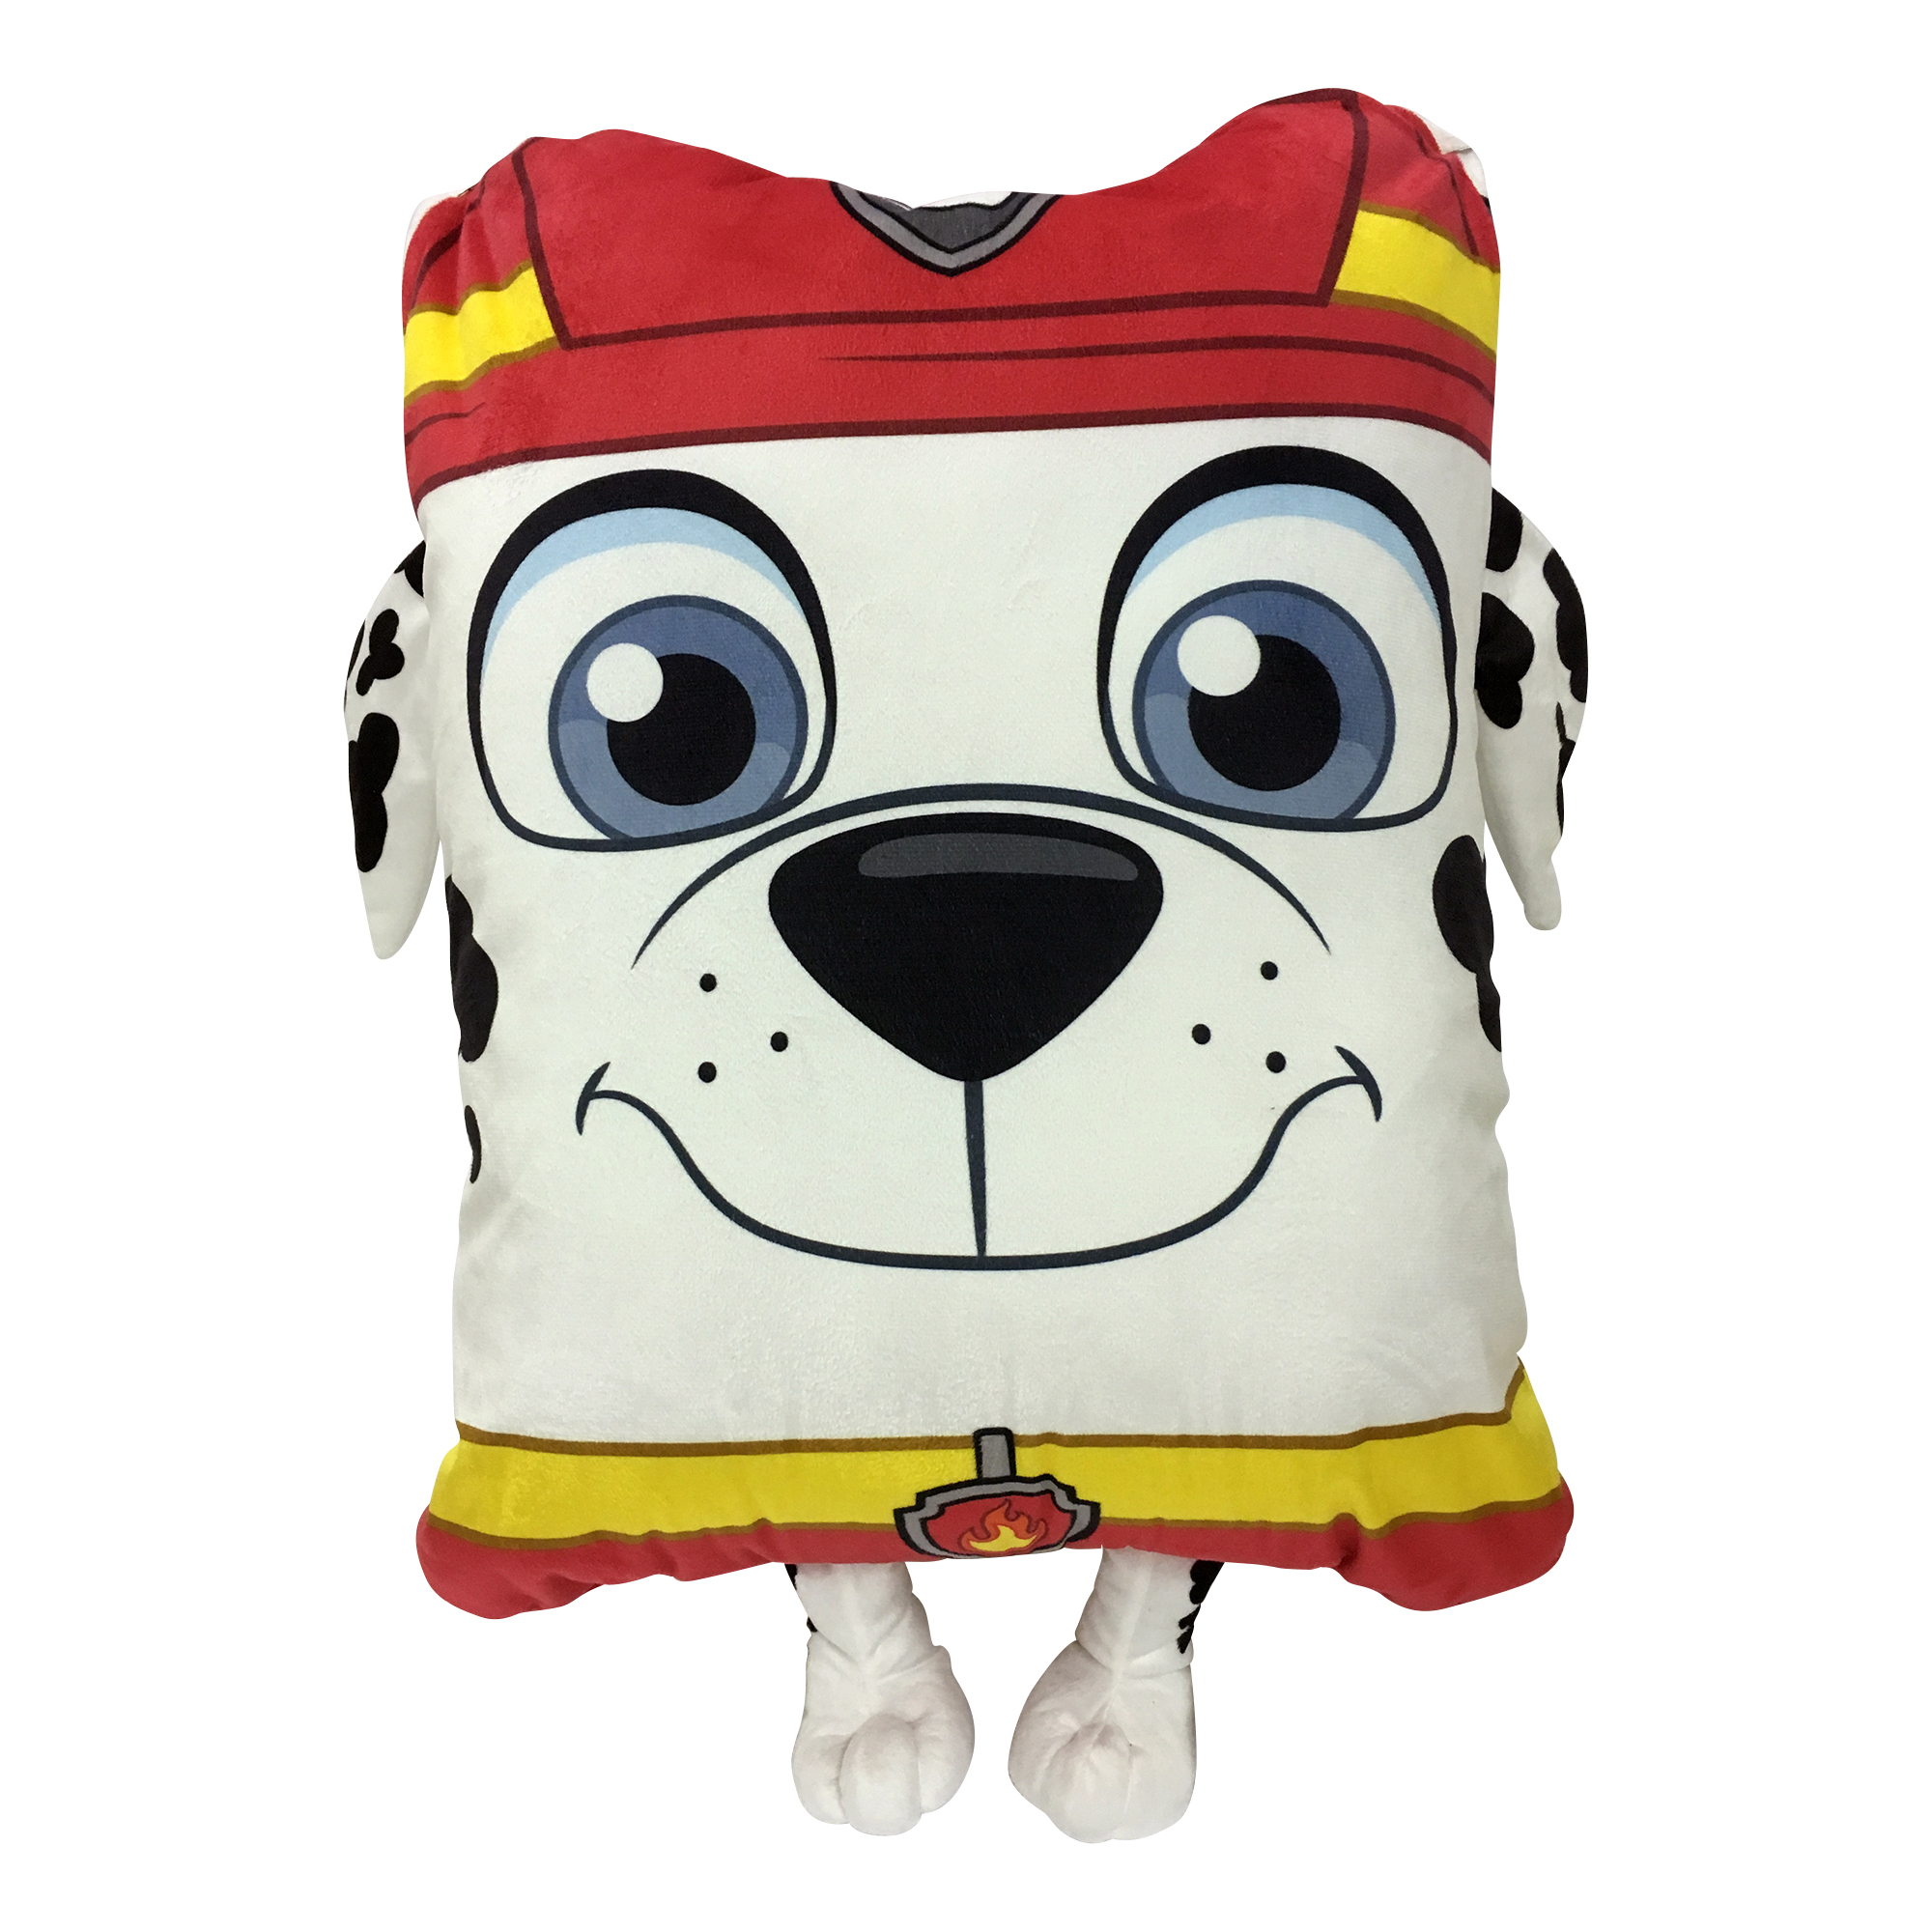 Nickelodeon Paw Patrol Marshall 3D Pillow Buddy, 20 x 26